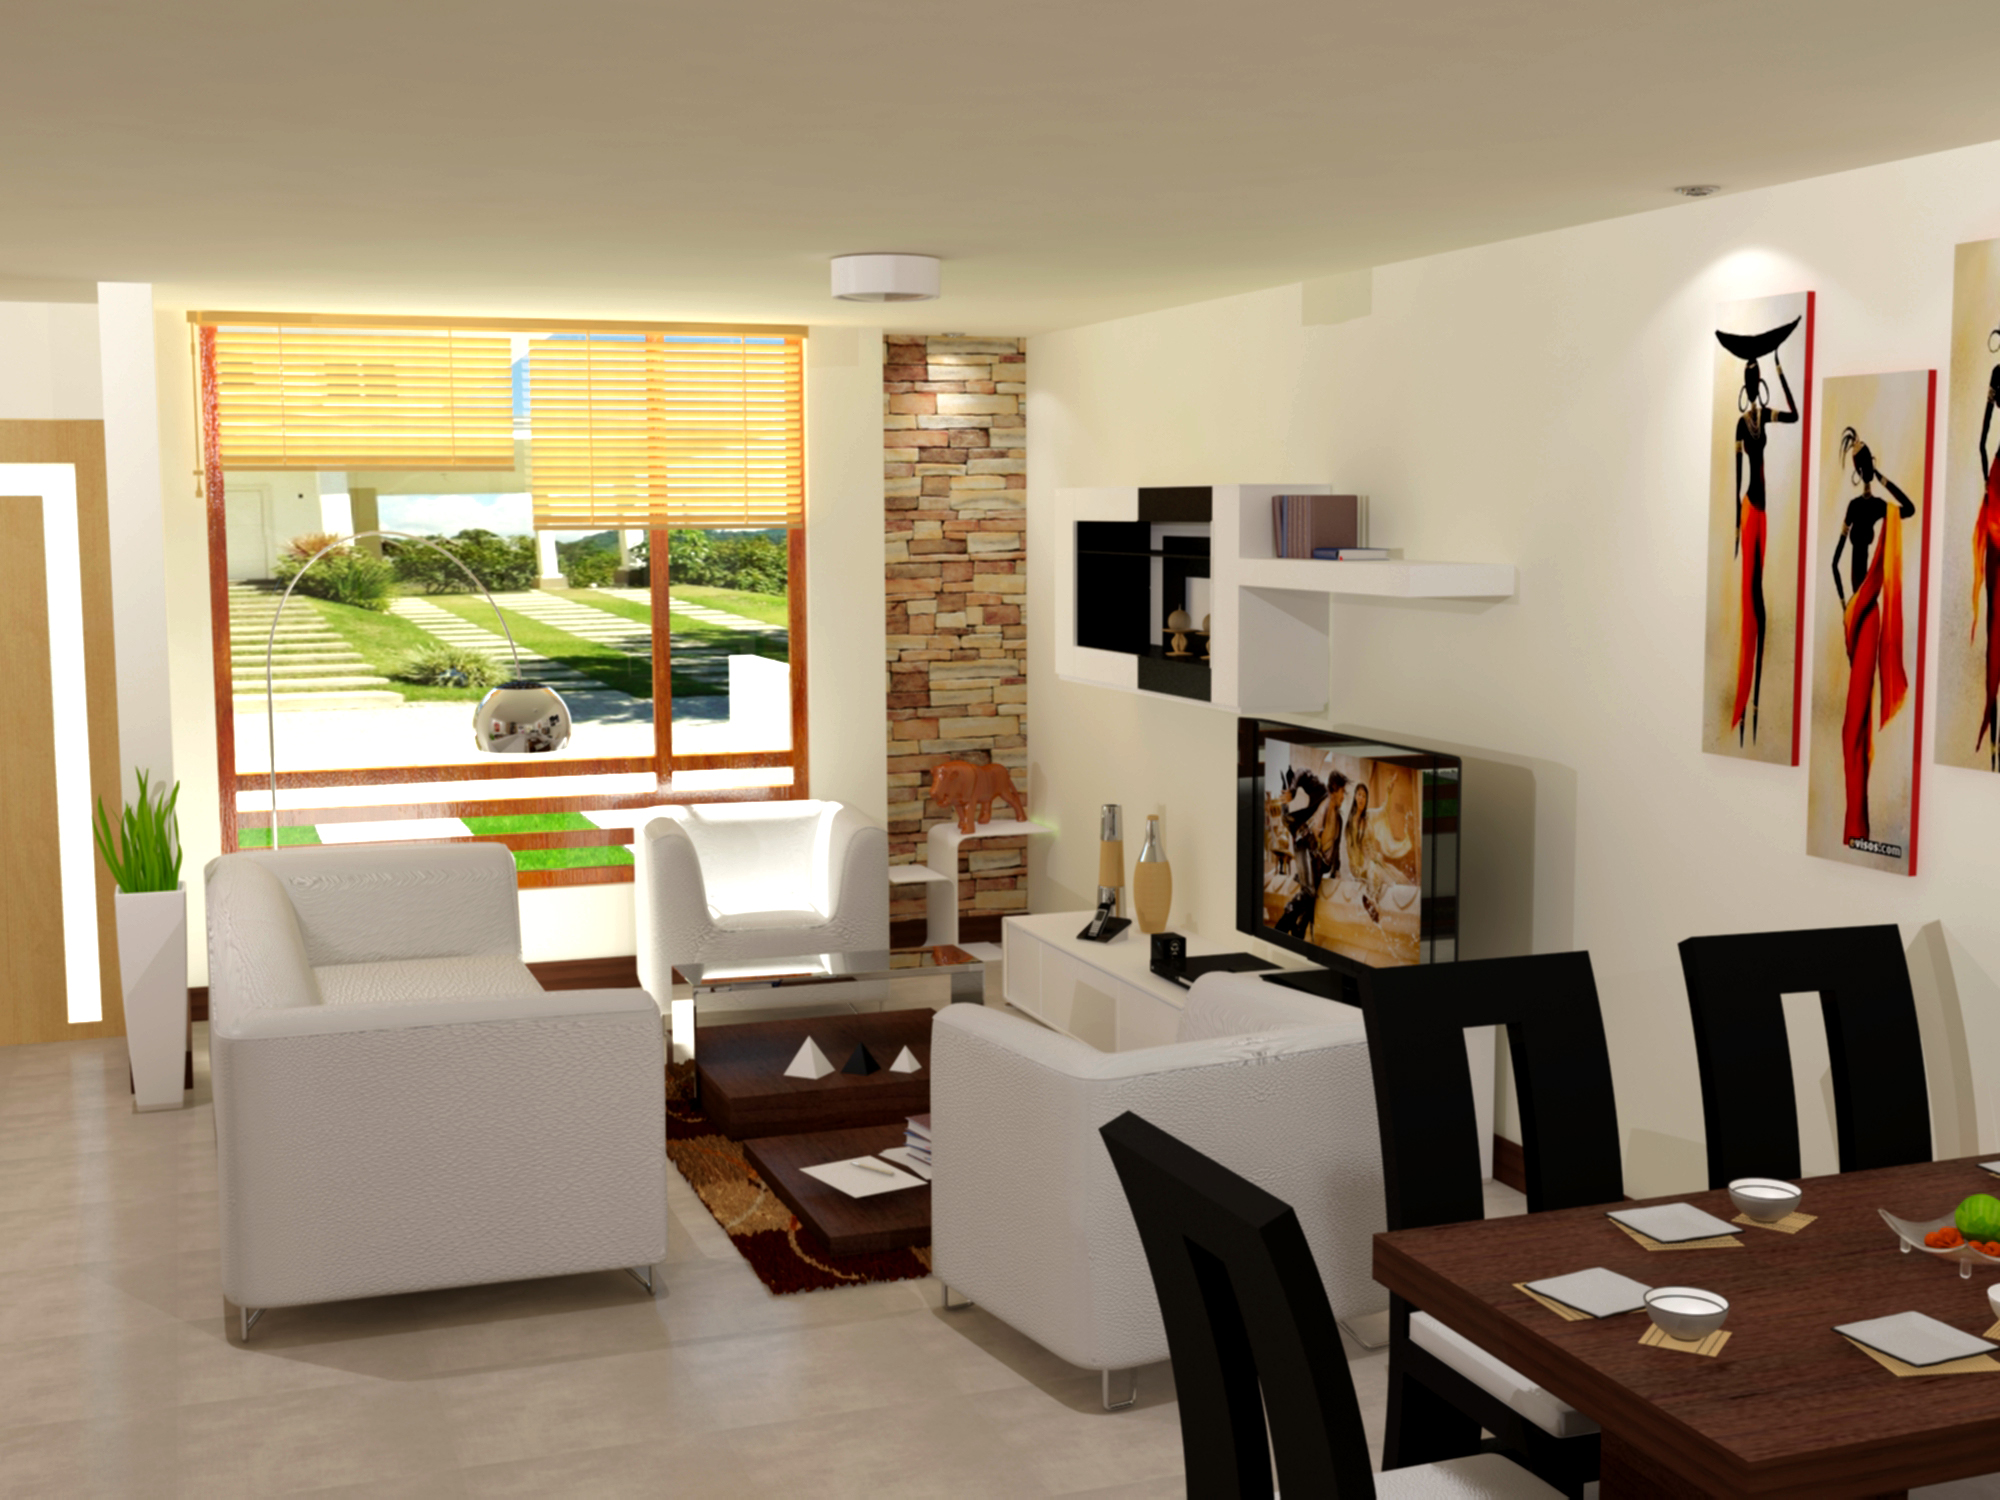 Como decorar una casa innovadoras ideas para ti for Decorar casas